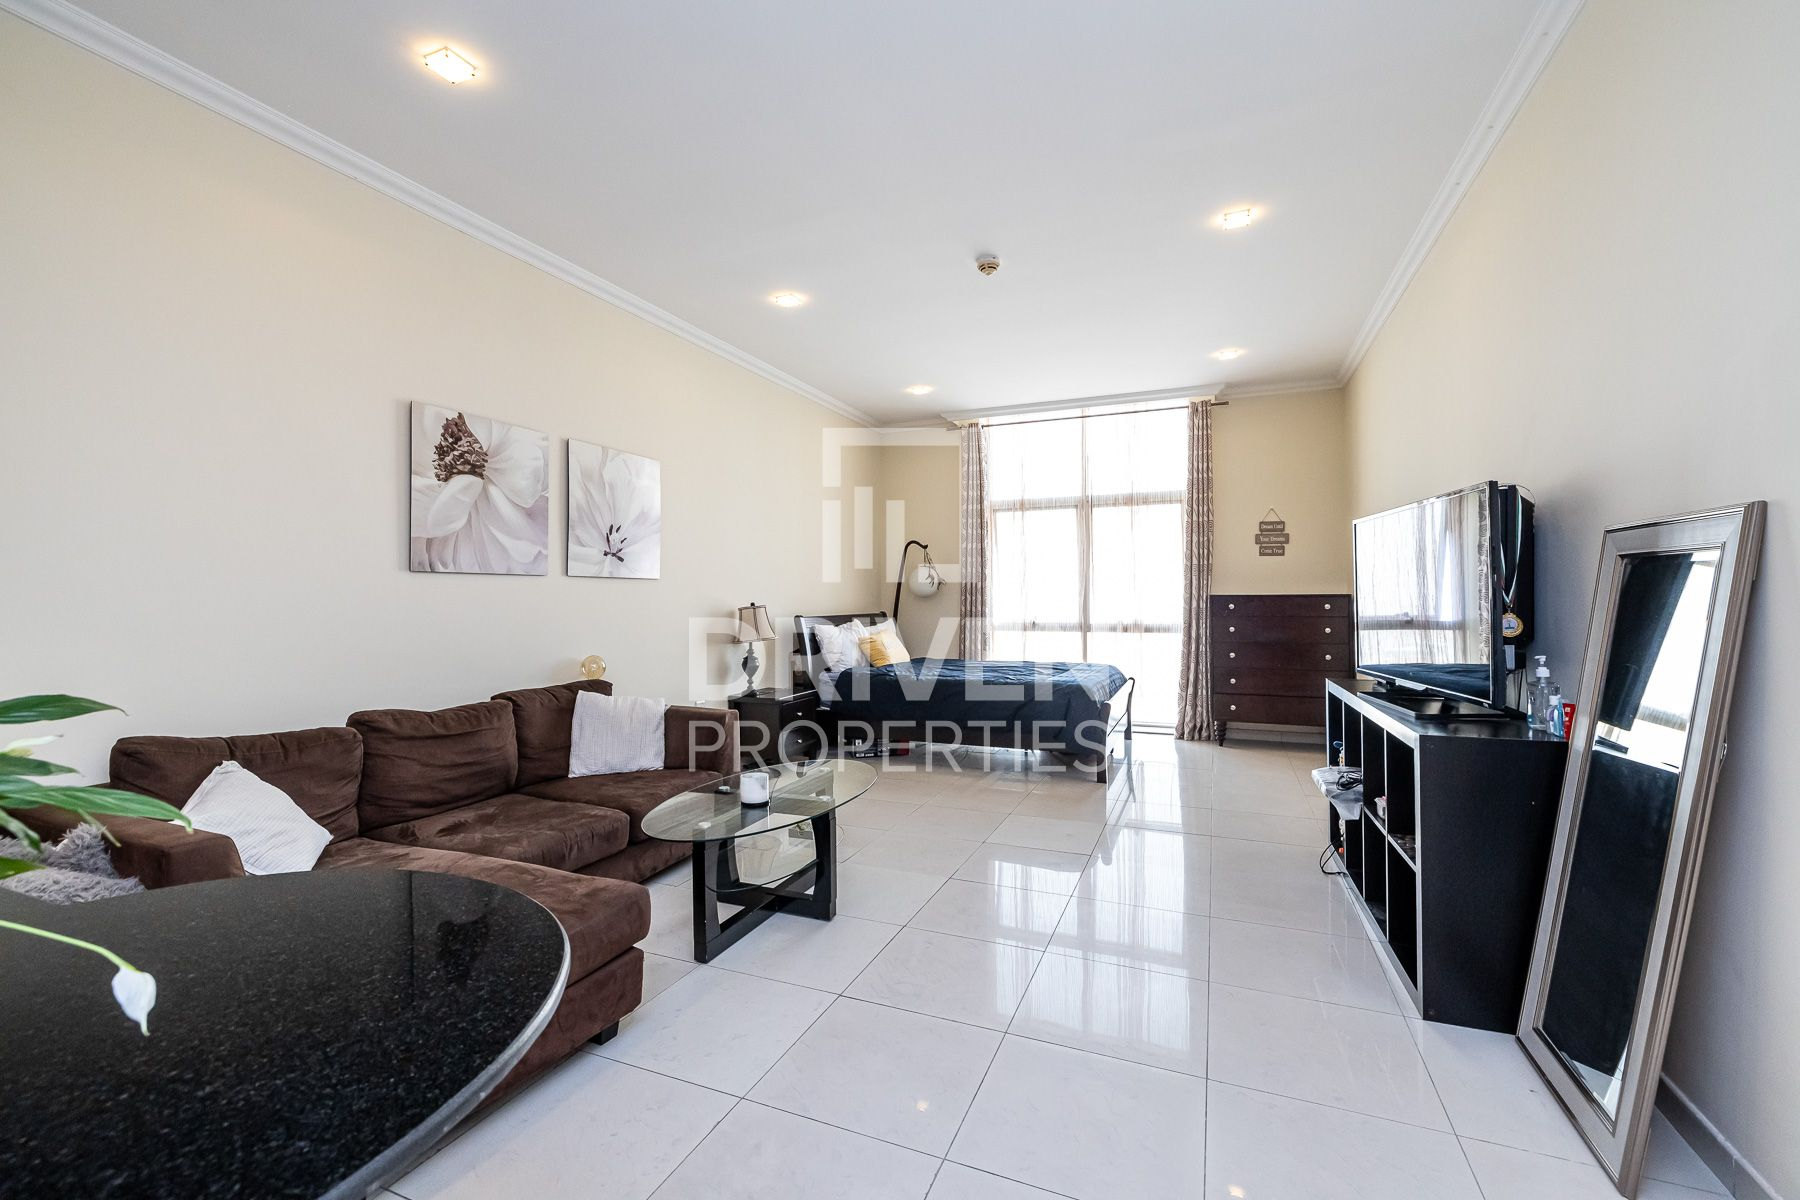 Furnished Unit | Rented in Monthly Basis